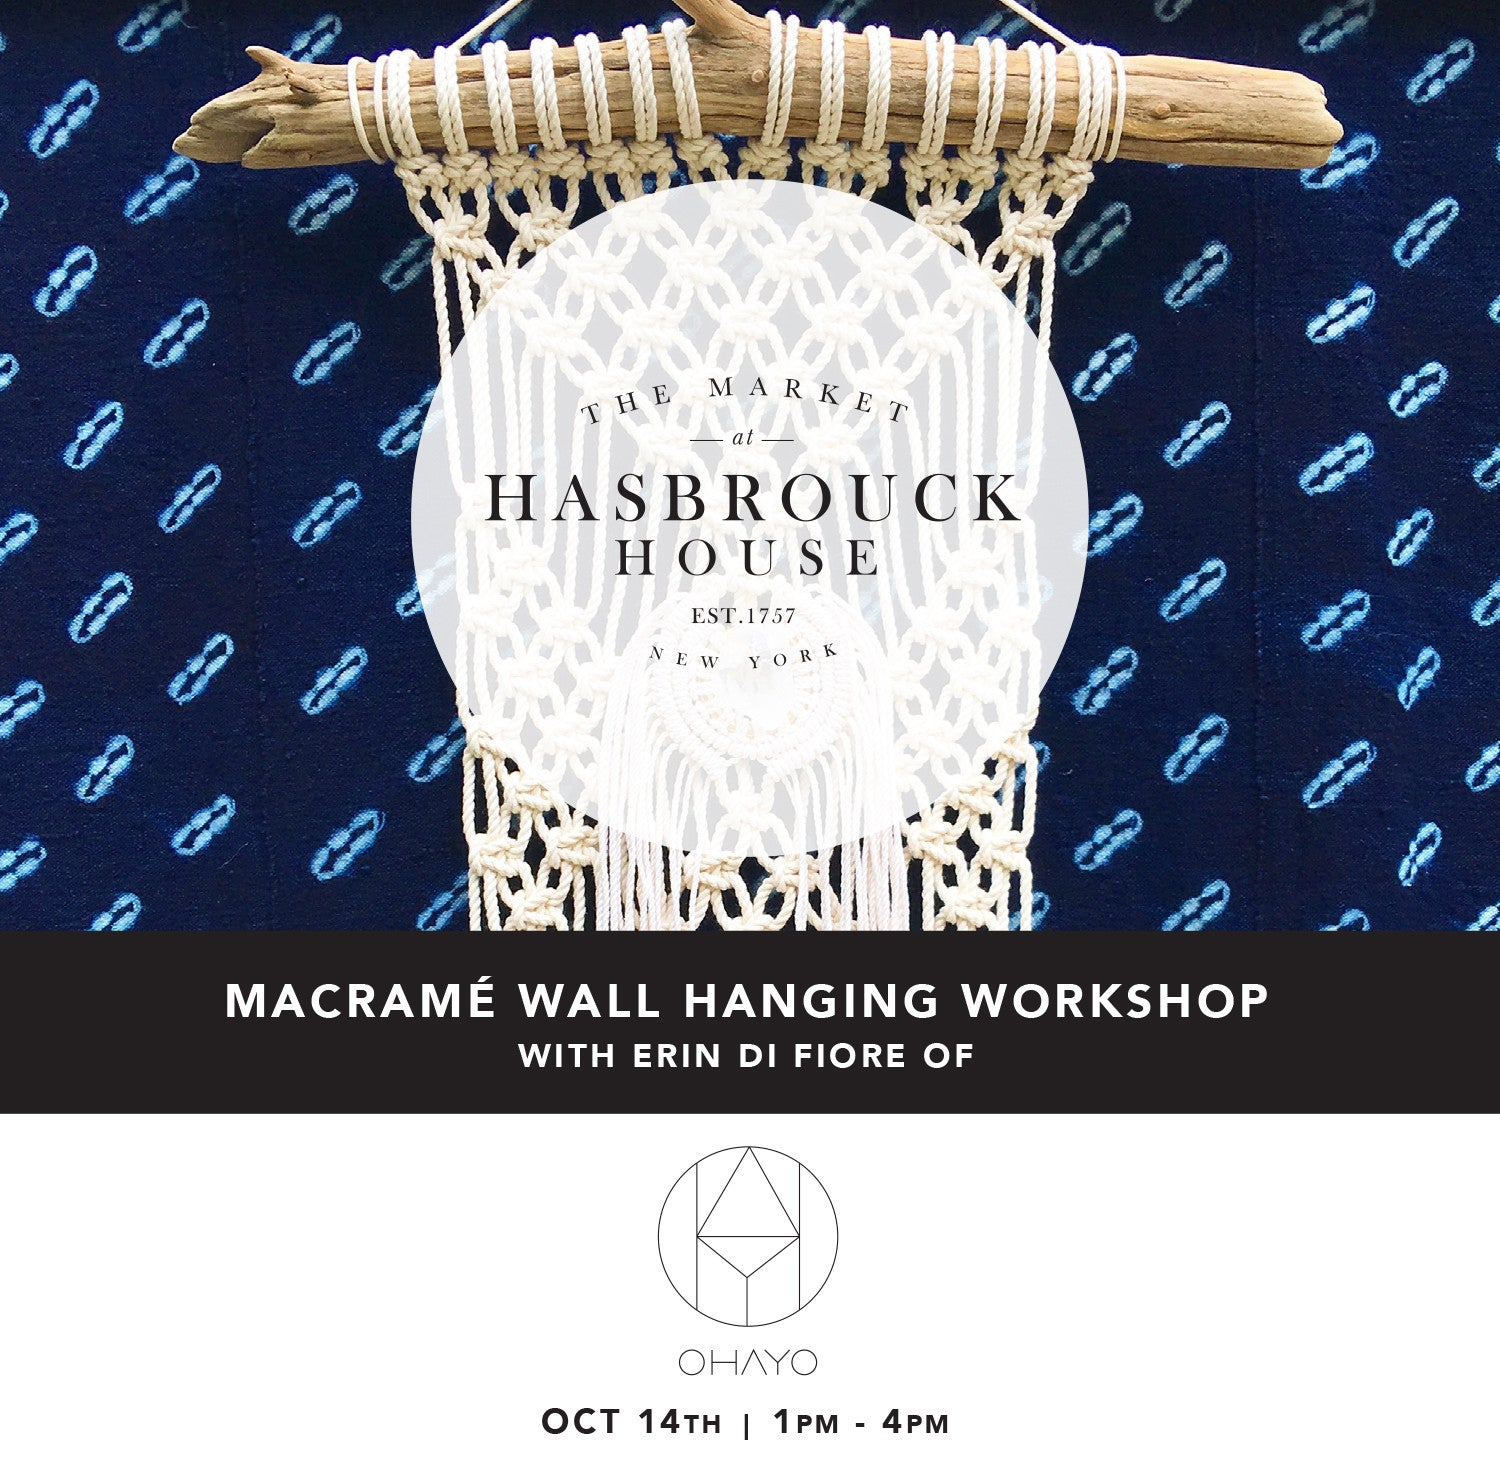 MACRAMÉ WALL HANGING WORKSHOP | THE MARKET AT HASBROUCK HOUSE